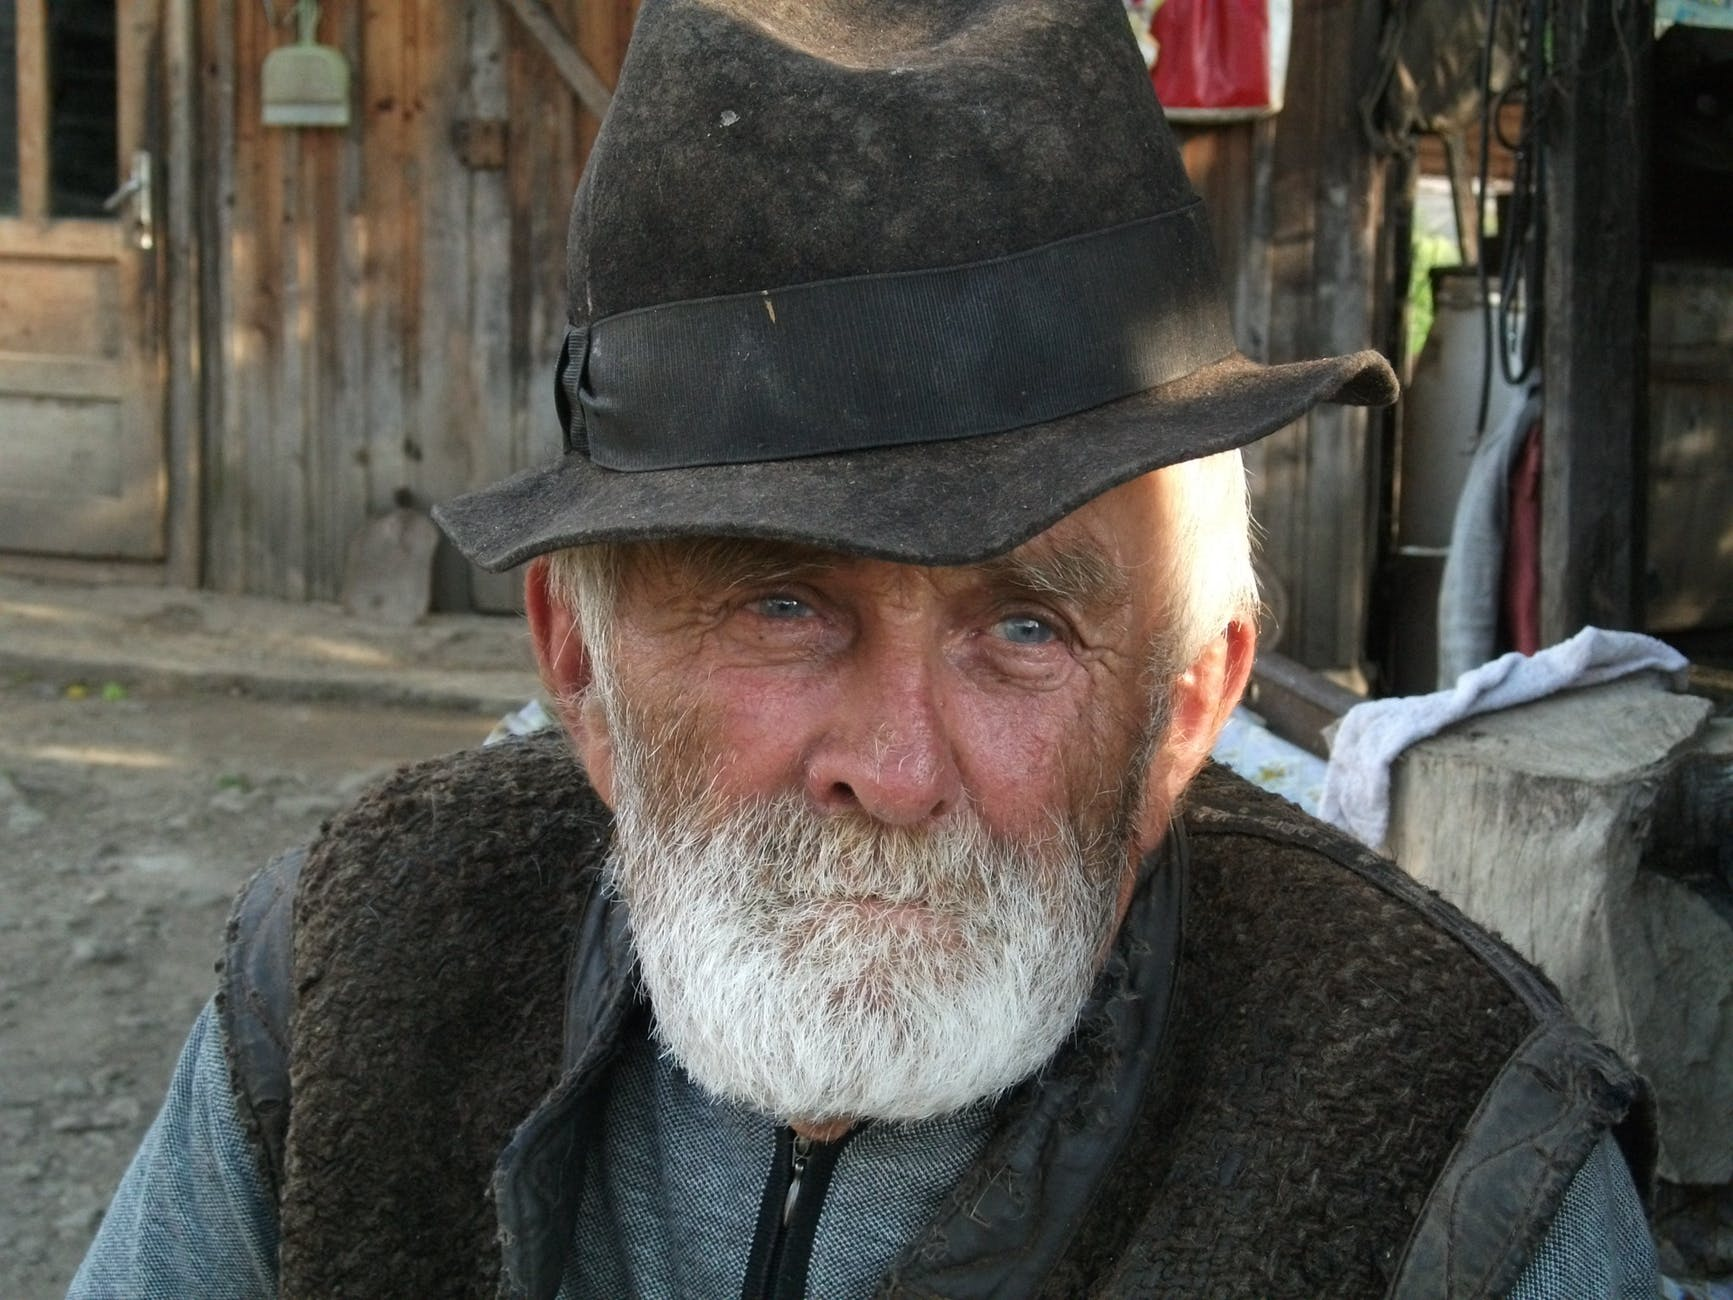 man with white beard wearing black hat during daytime